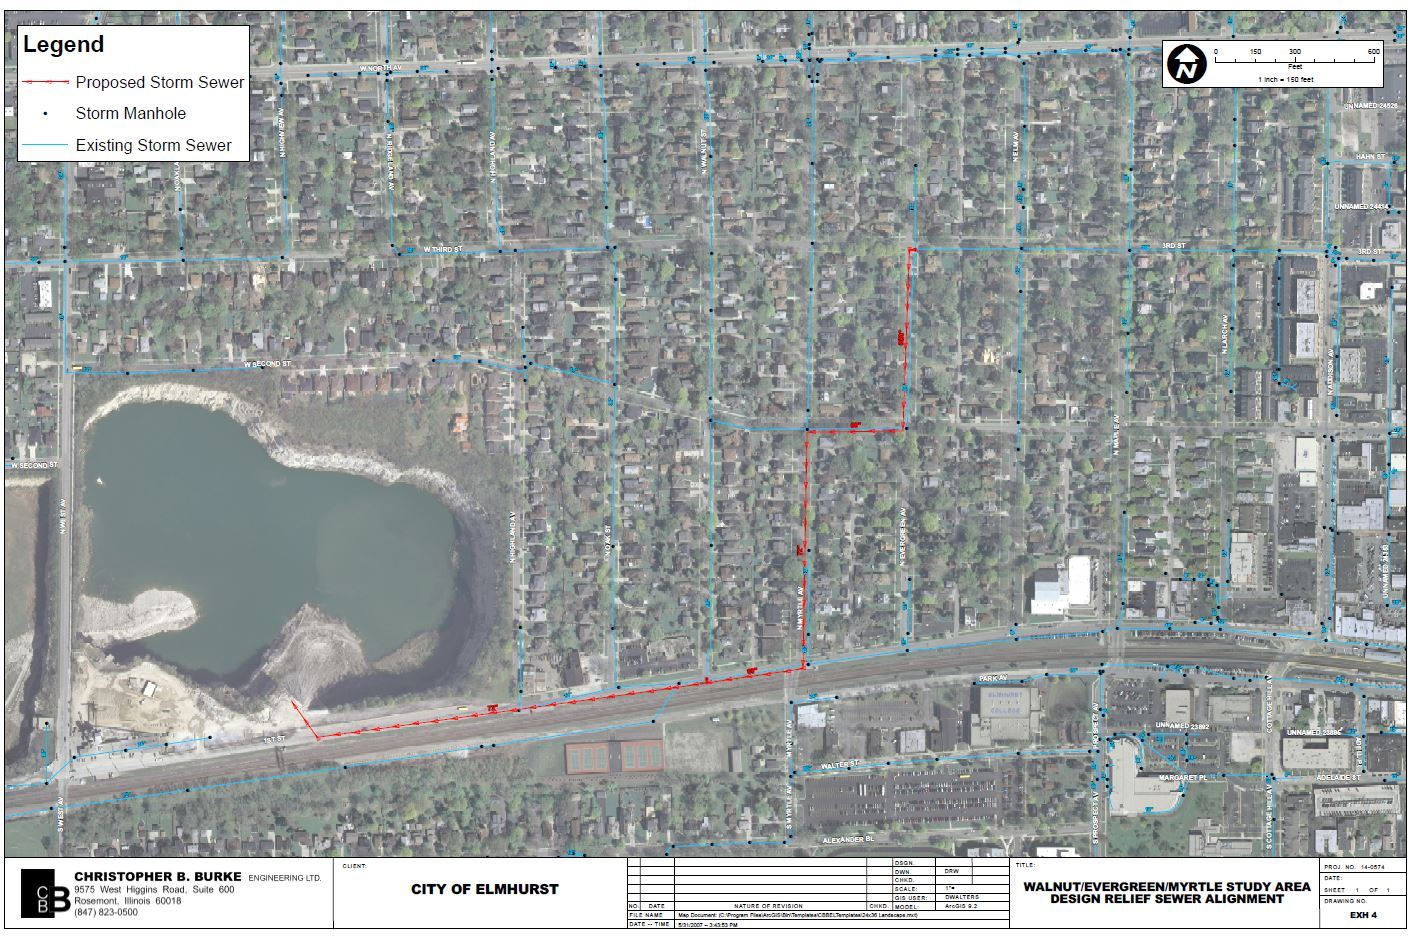 walnut-myrtle-evergreen proposed stormsewer